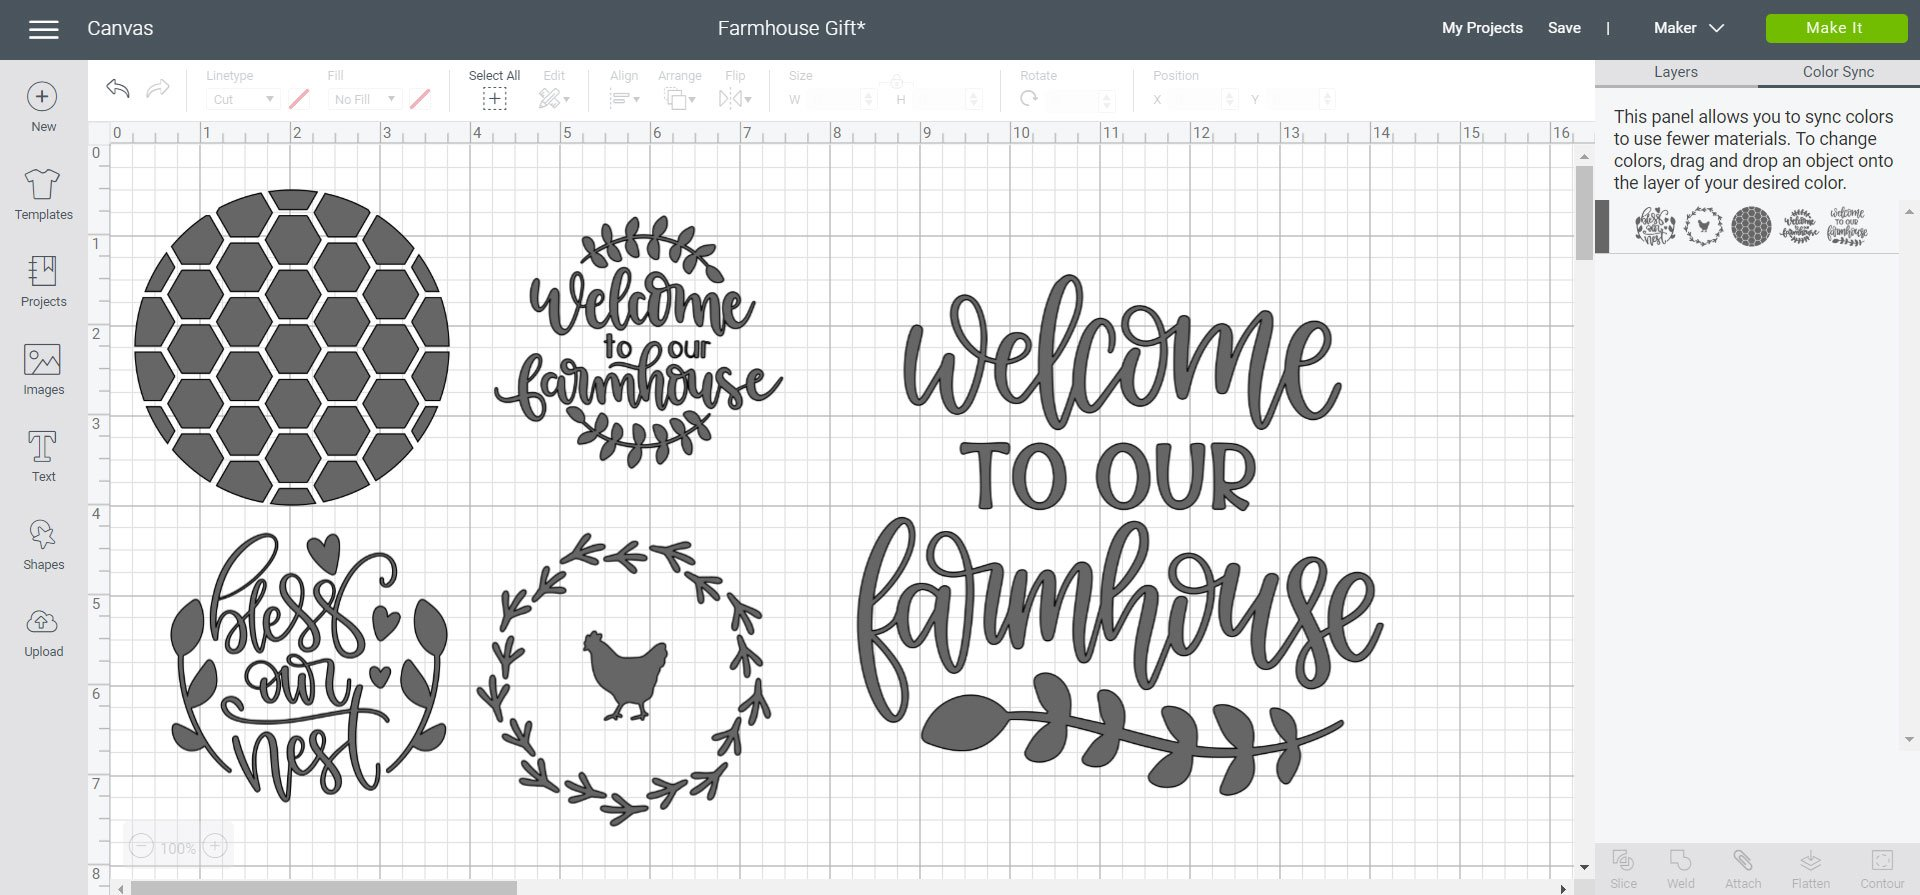 Cricut Design Space File - Farmhouse Gift